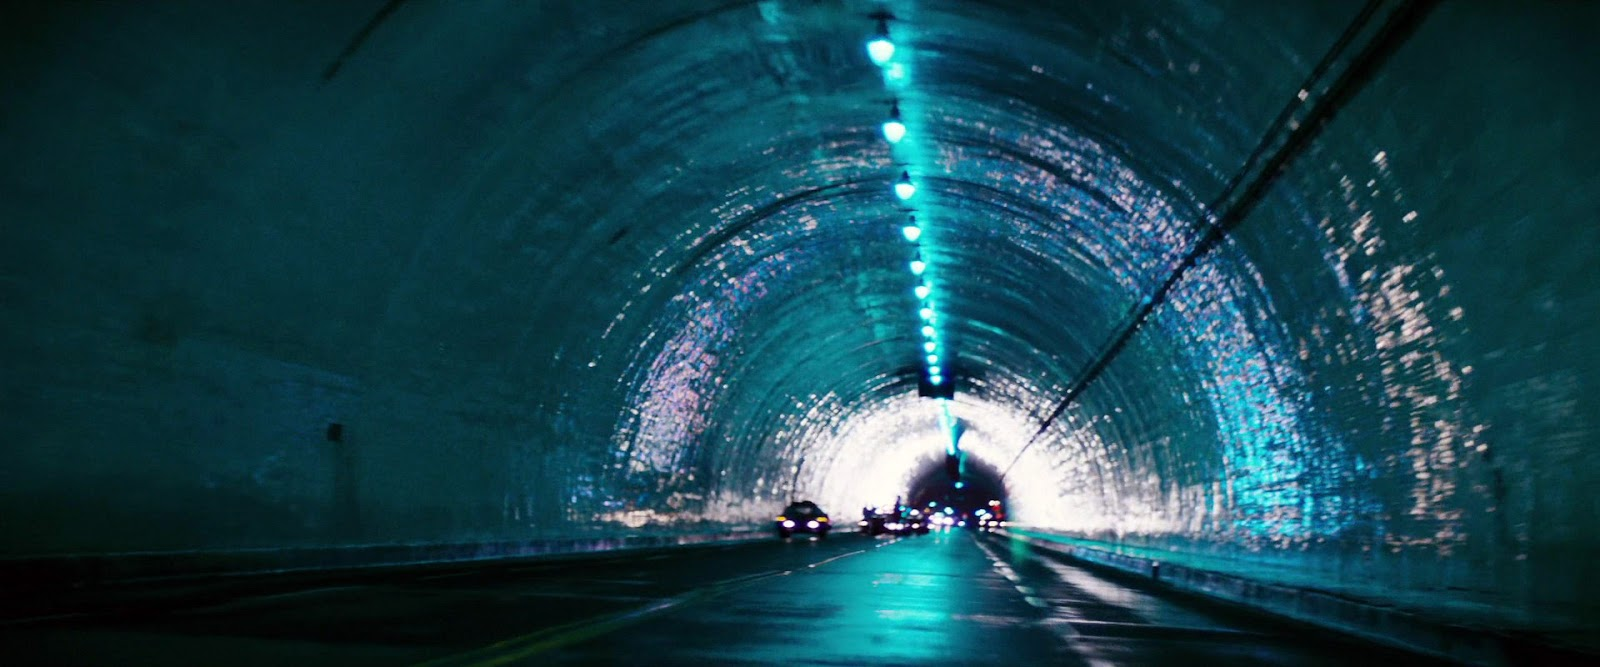 Ridley Scott Blade Runner Rick Deckard 2nd Street Tunnel